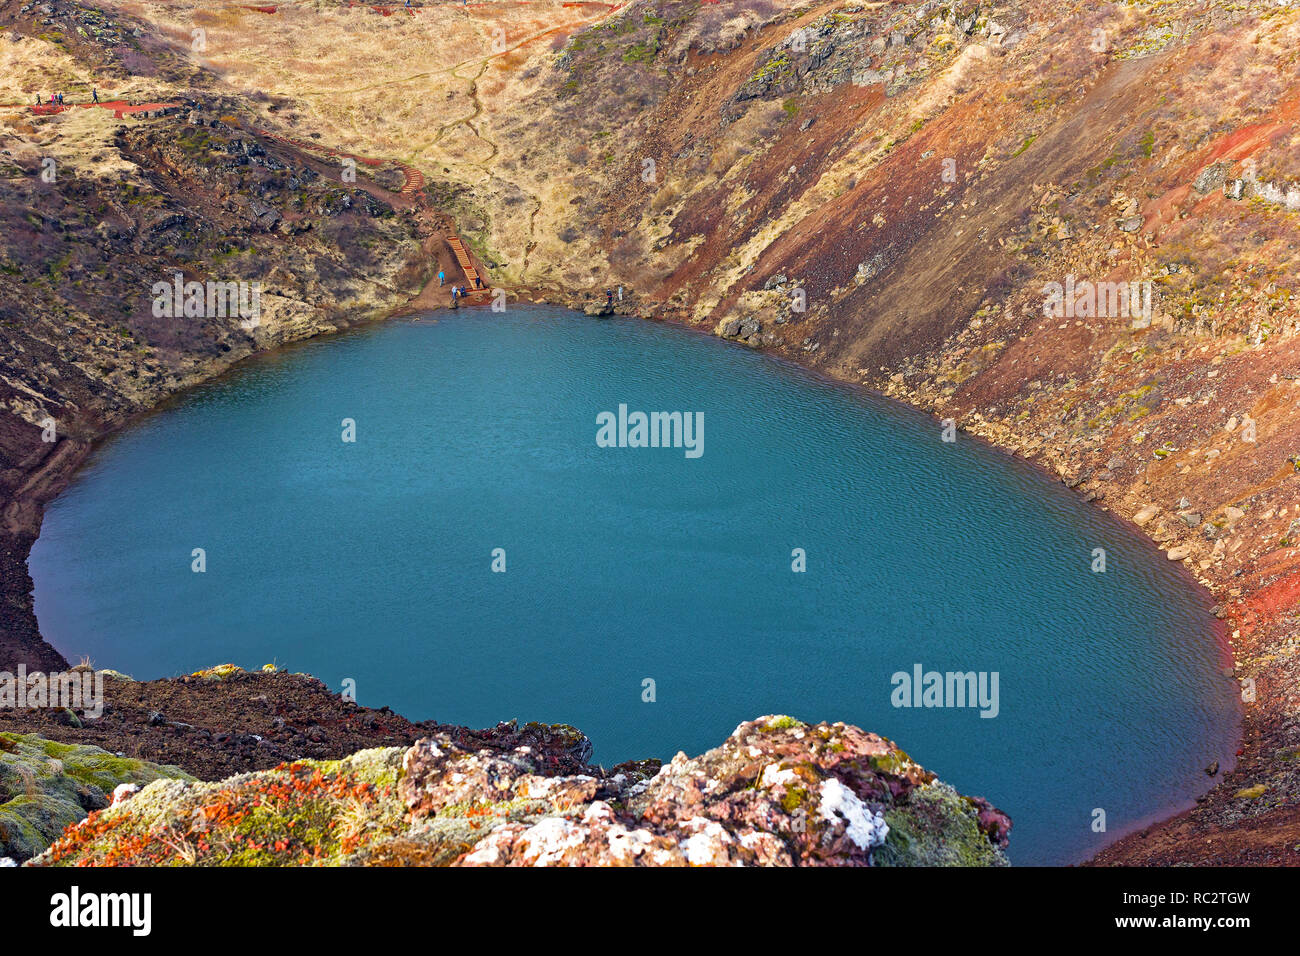 Tourists visit a volcanic crater lake in Iceland. The lake located in south Iceland, in Grimsnes along the Golden Circle. - Stock Image